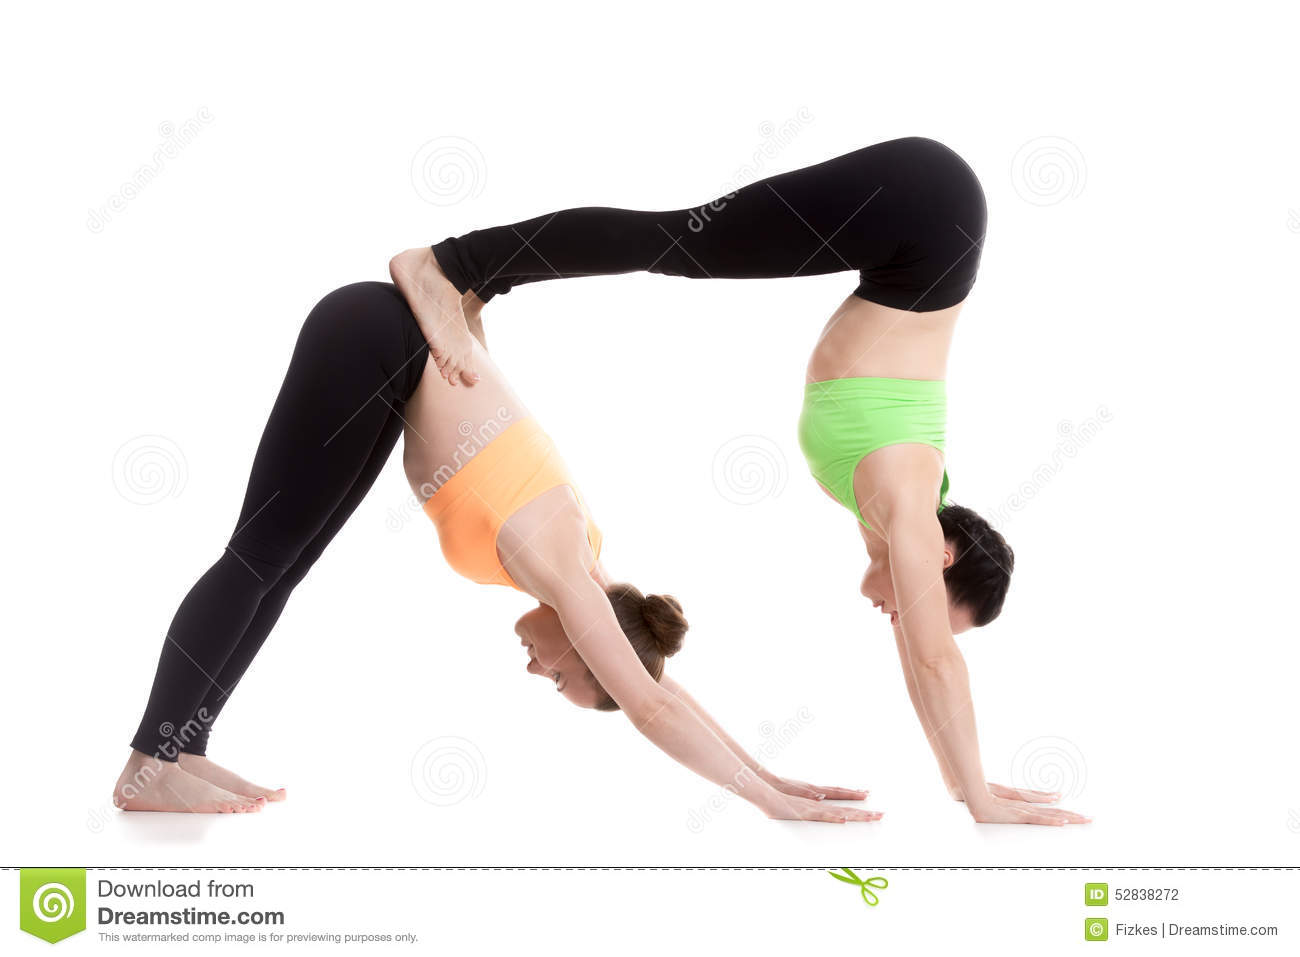 Favori Acroyoga, Downward-facing Dog Yoga Pose Stock Photo - Image: 52838272 TA46